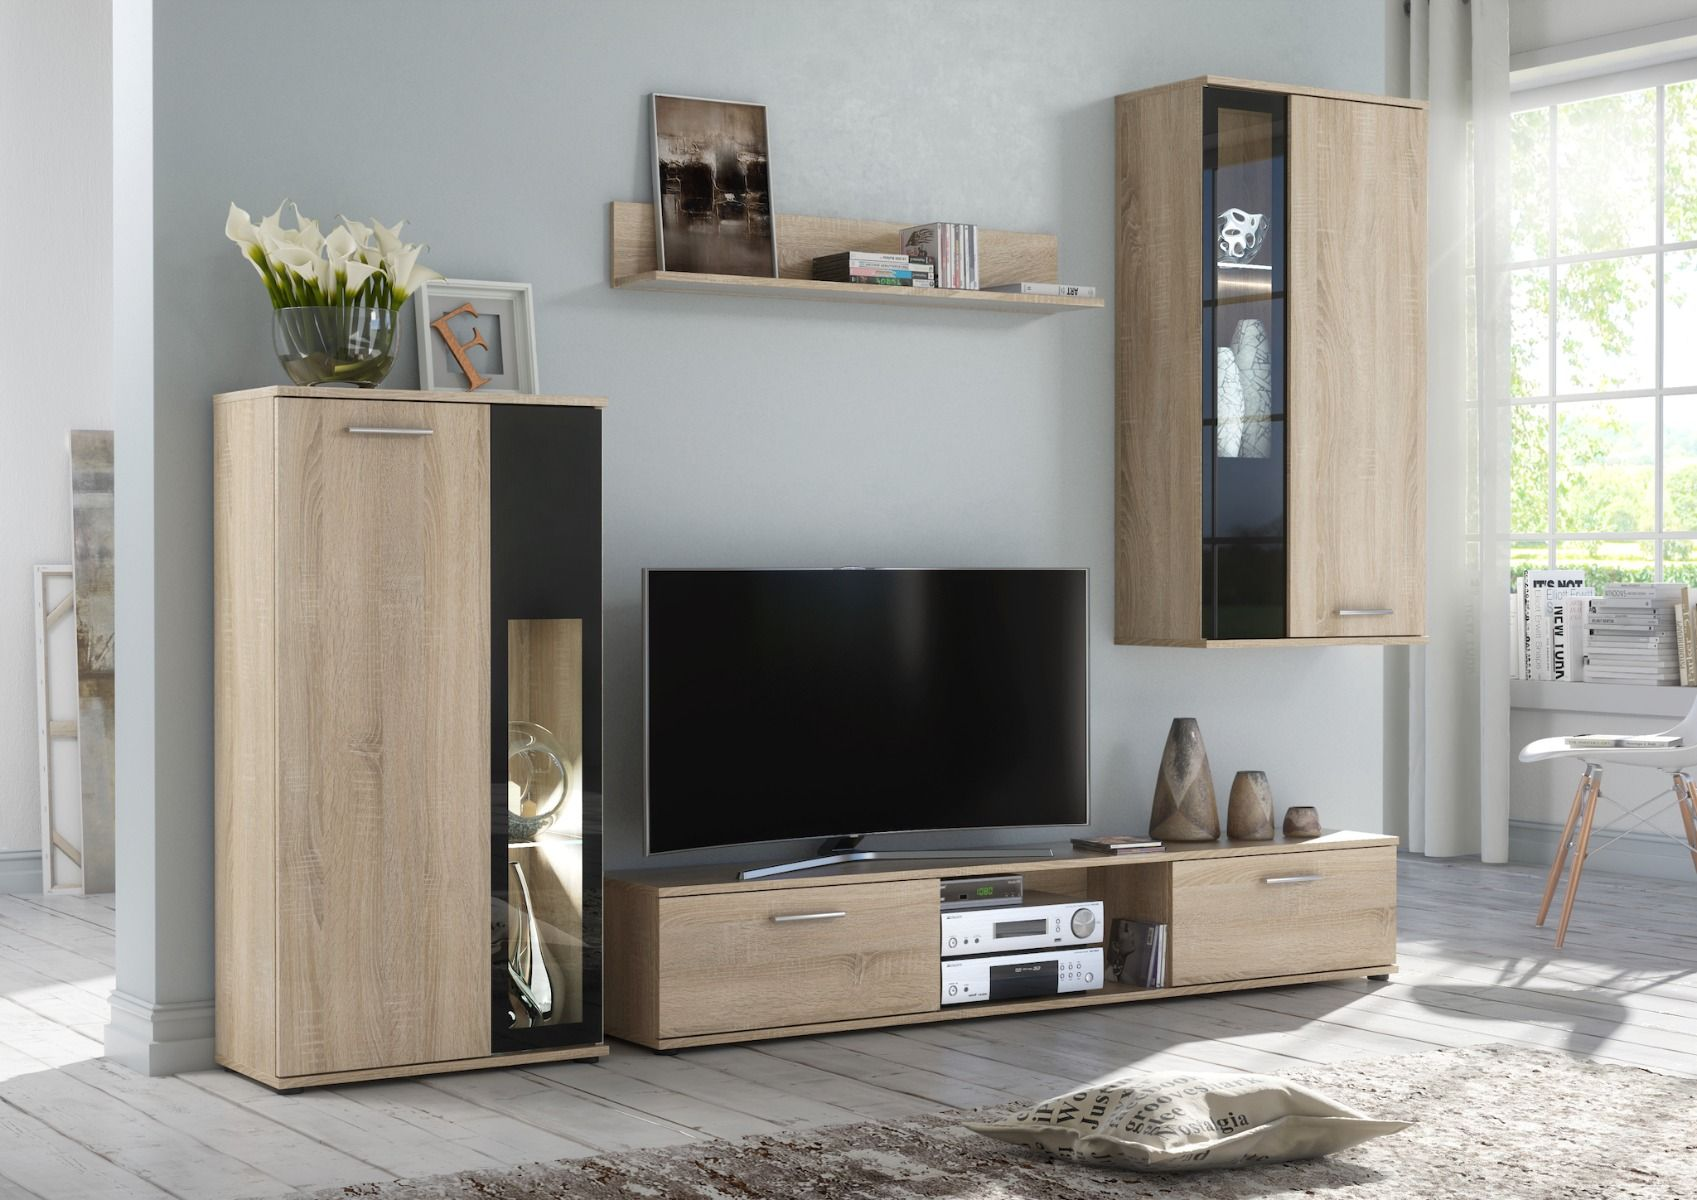 Waco - television wall unit in 9  Modern tv wall units, Living